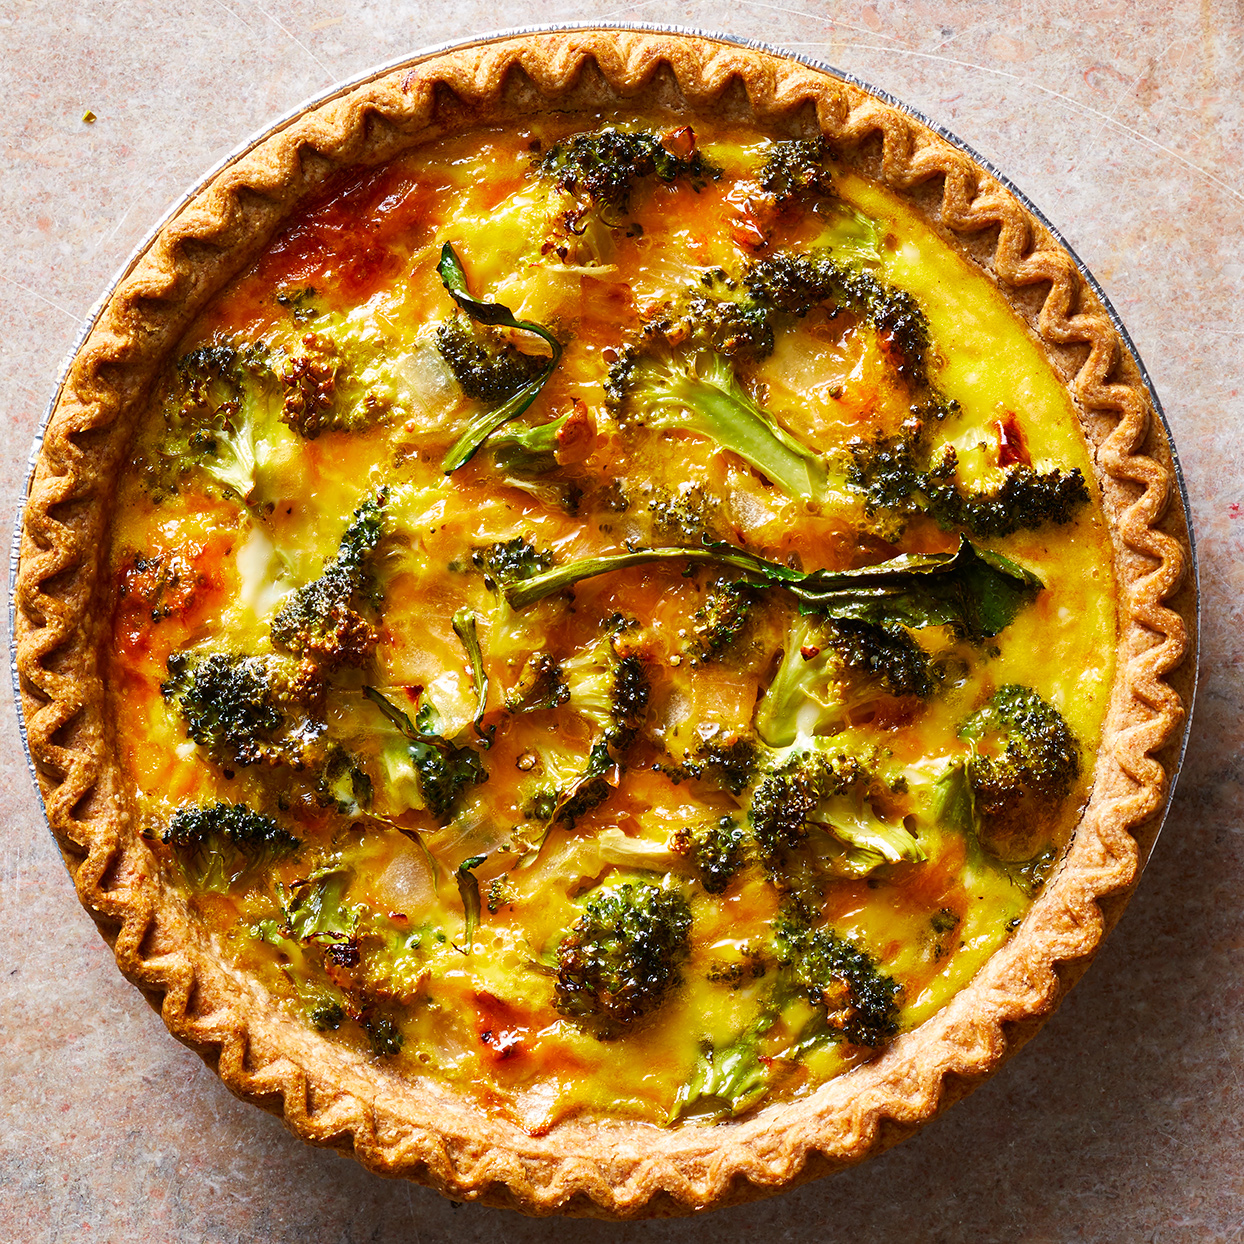 This easy, cheesy broccoli quiche gets its creamy texture from evaporated milk. It's also a great recipe to make ahead: simply reheat before serving or cut into slices and reheat each morning for breakfast. Using pre-cut microwaveable broccoli cuts down on prep time, but if you have broccoli crowns sitting around, go ahead and use those up. Just be sure to cook the broccoli until it's just barely tender or the final dish will have overcooked, soggy broccoli. Source: EatingWell.com, October 2019